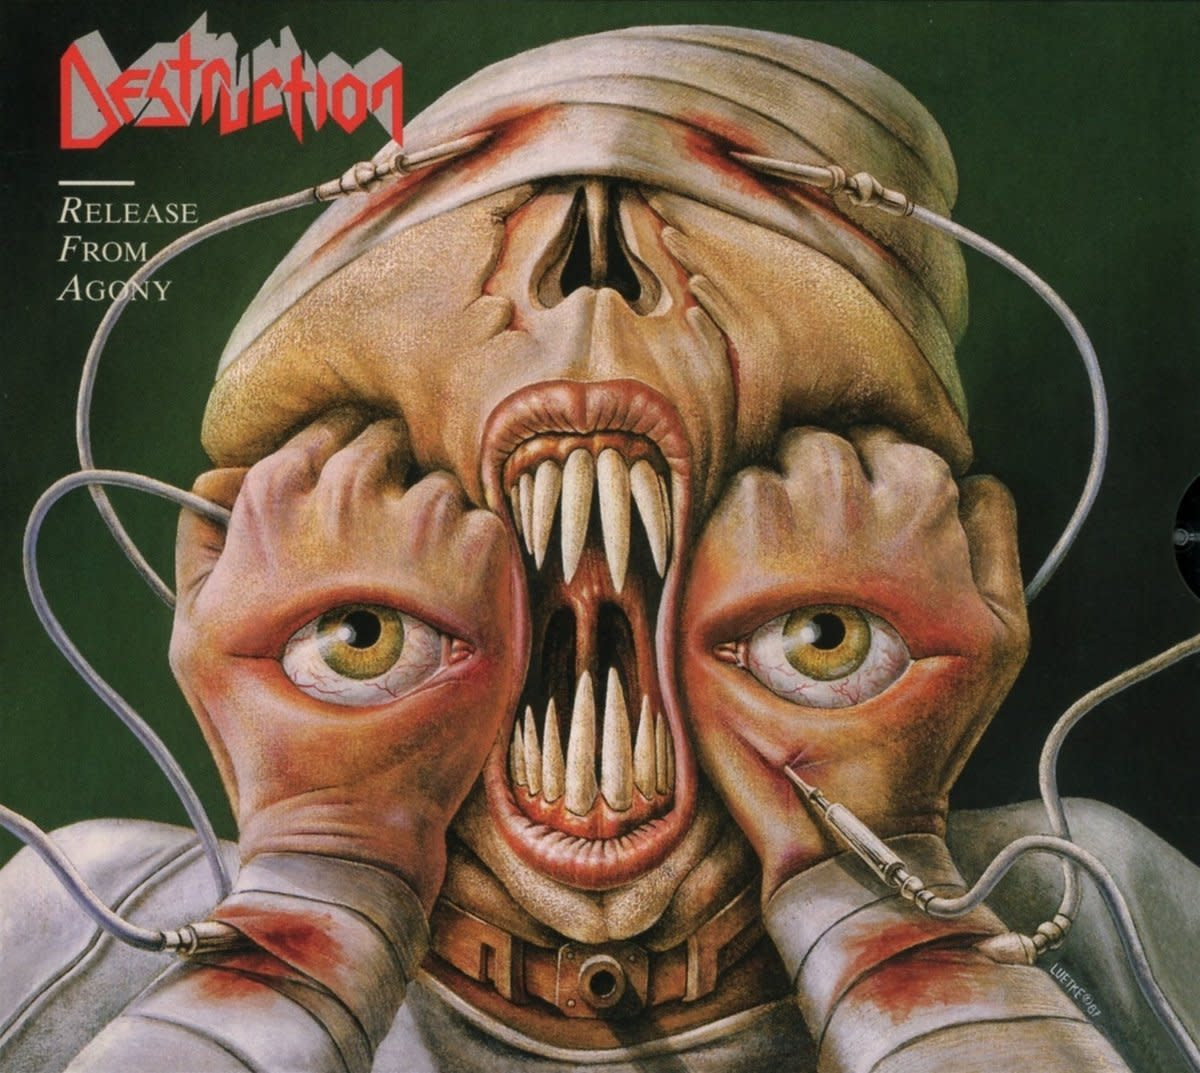 review-of-the-album-release-from-agony-by-germanys-thrash-metal-band-destruction